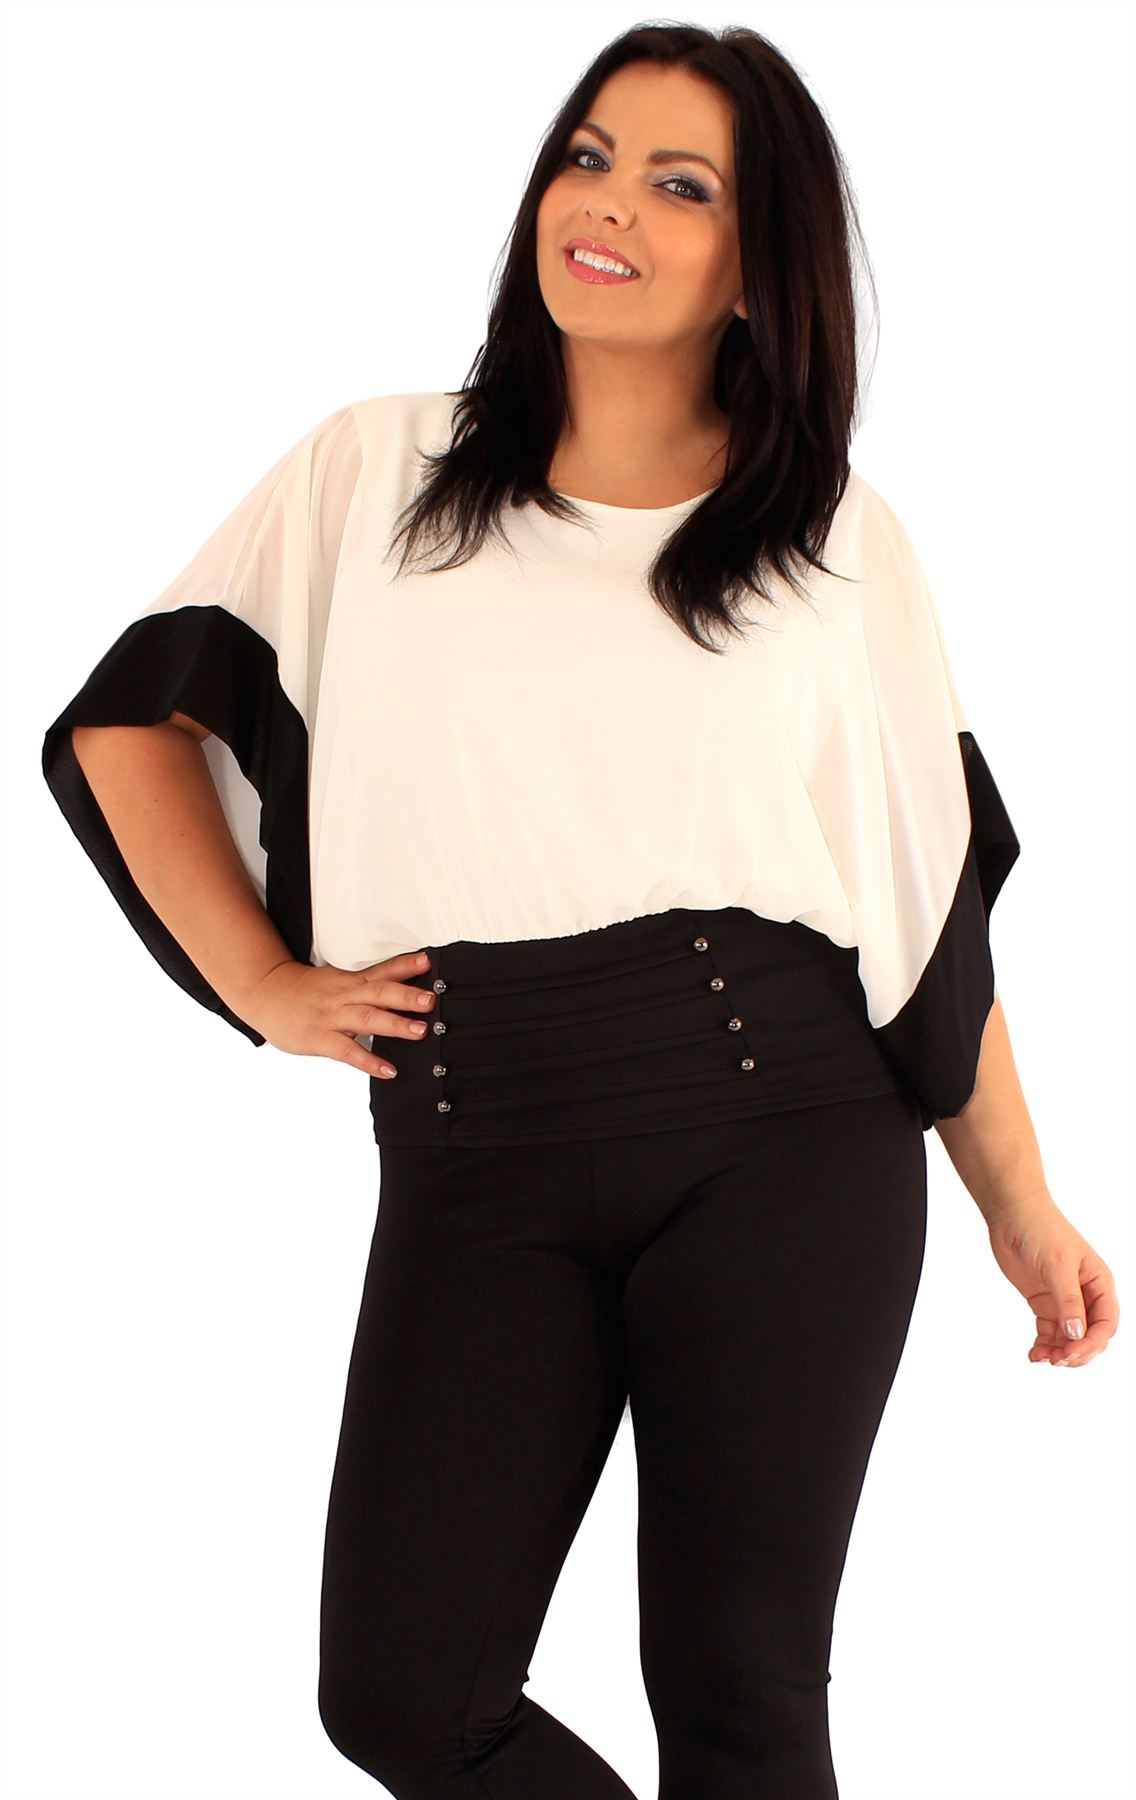 New Ladies Plus Size Corset Batwing Sleeve Two Tone Colored Chiffon Tops 18-24